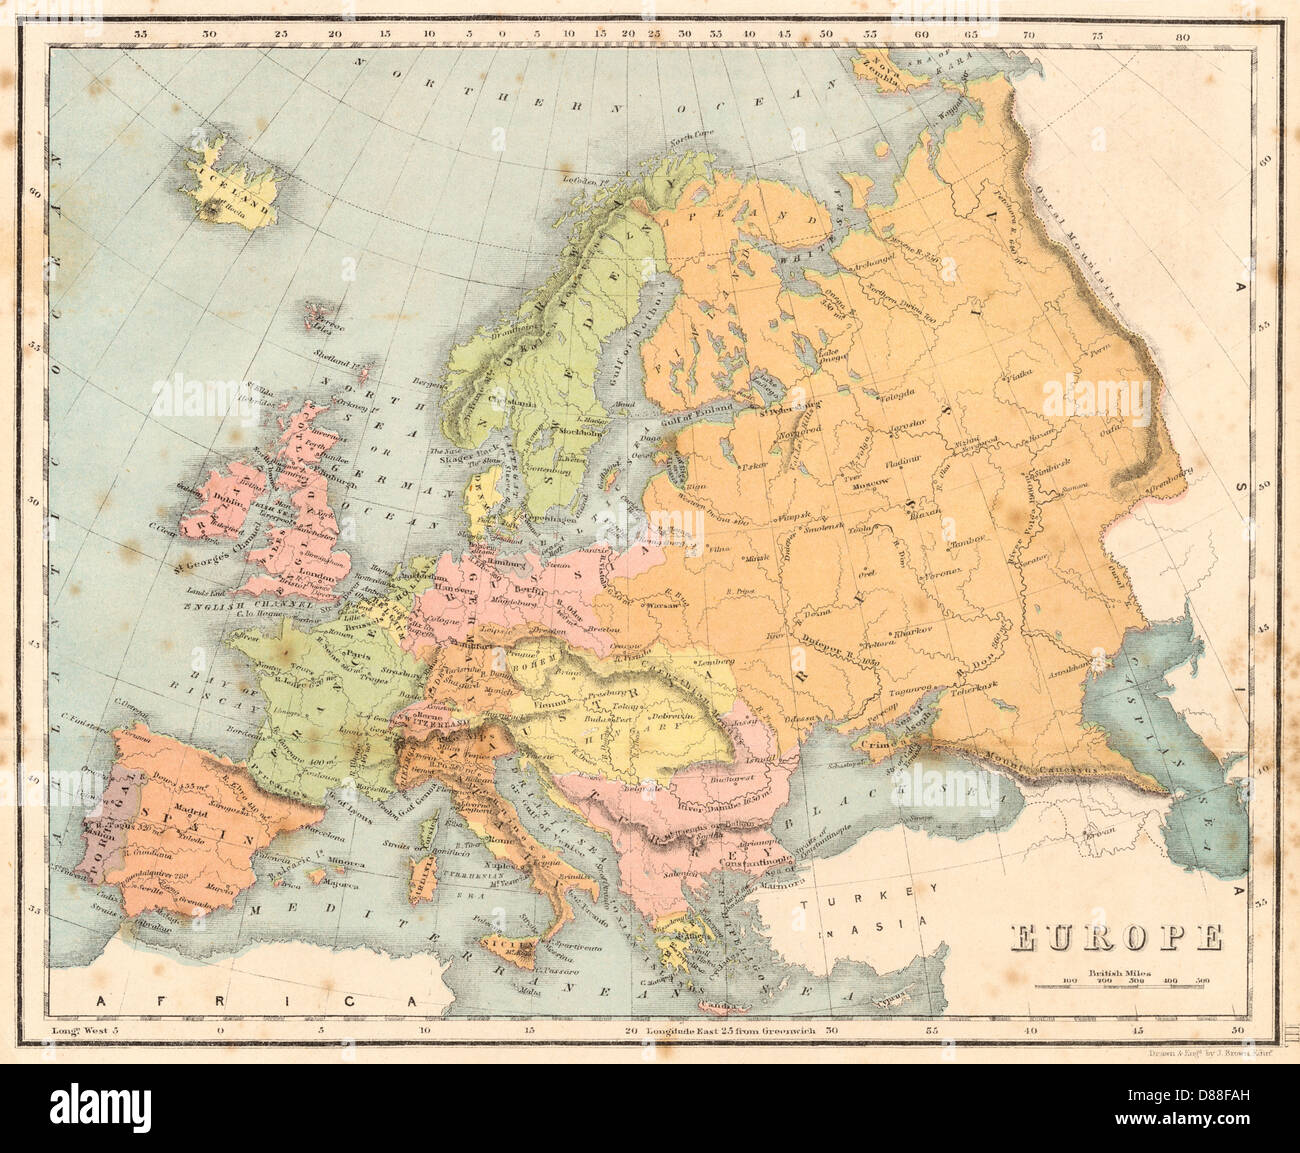 World map northern europe sofiasalemico mtamap wiring diagrams for map maps europe france stock 220 volt wiring diagram ford lincoln map europe c1840 d88fah map maps europe france stockhtml world map northern europe gumiabroncs Image collections